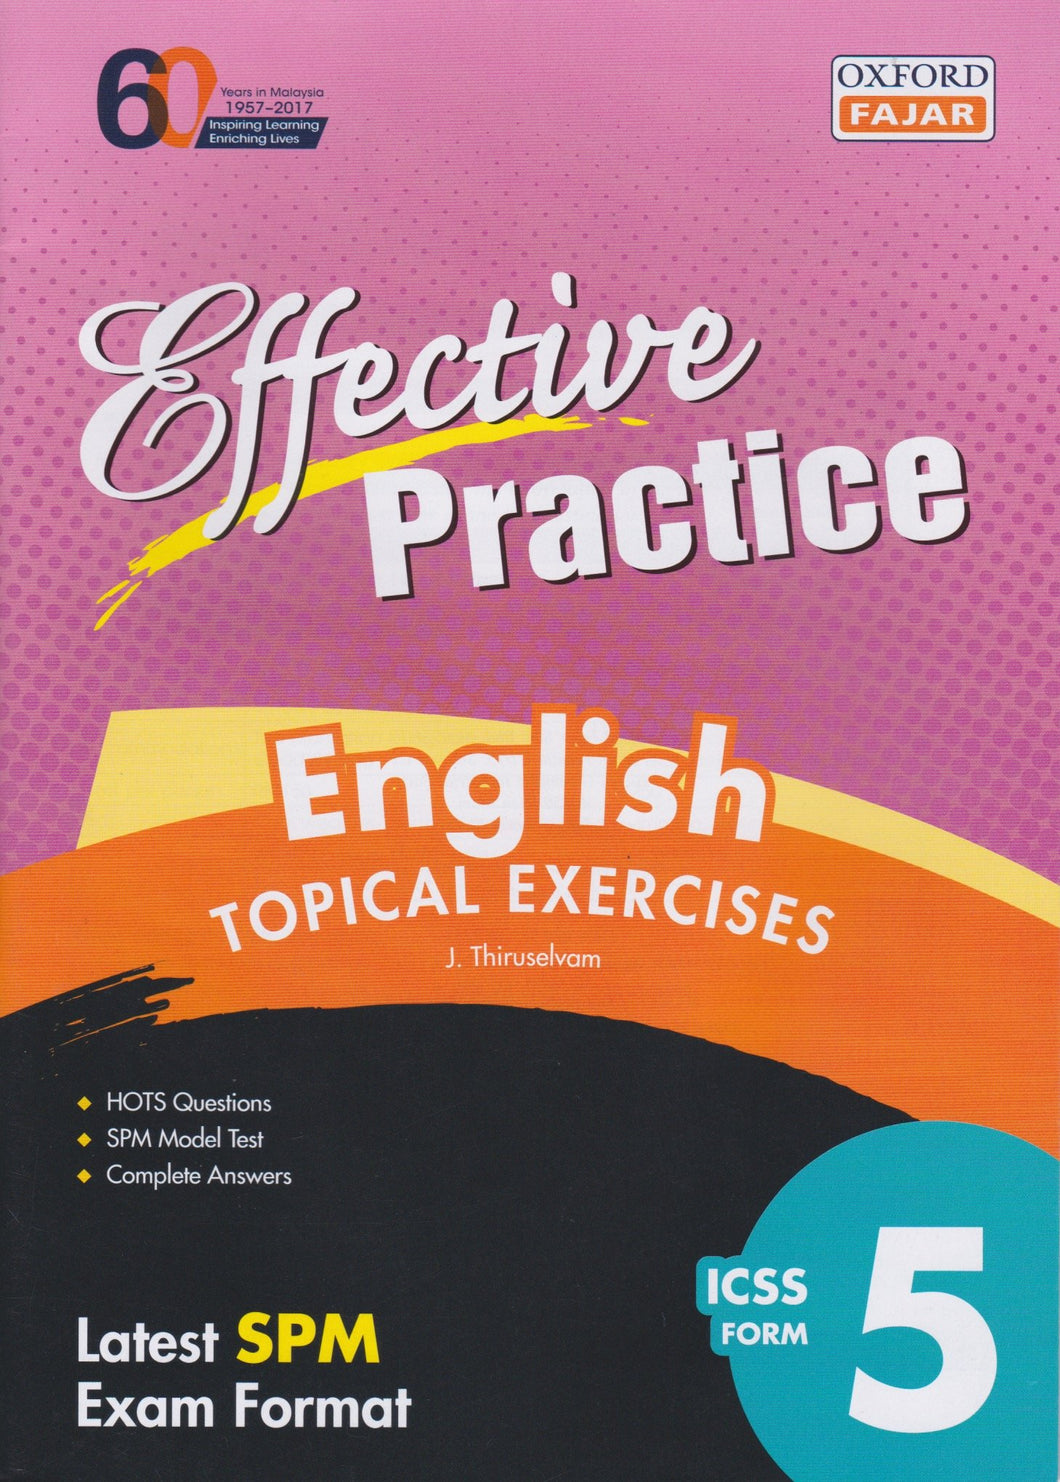 Oxford Fajar-Effective Practice: English Topical Exercises Form 5-9789834722821-BukuDBP.com